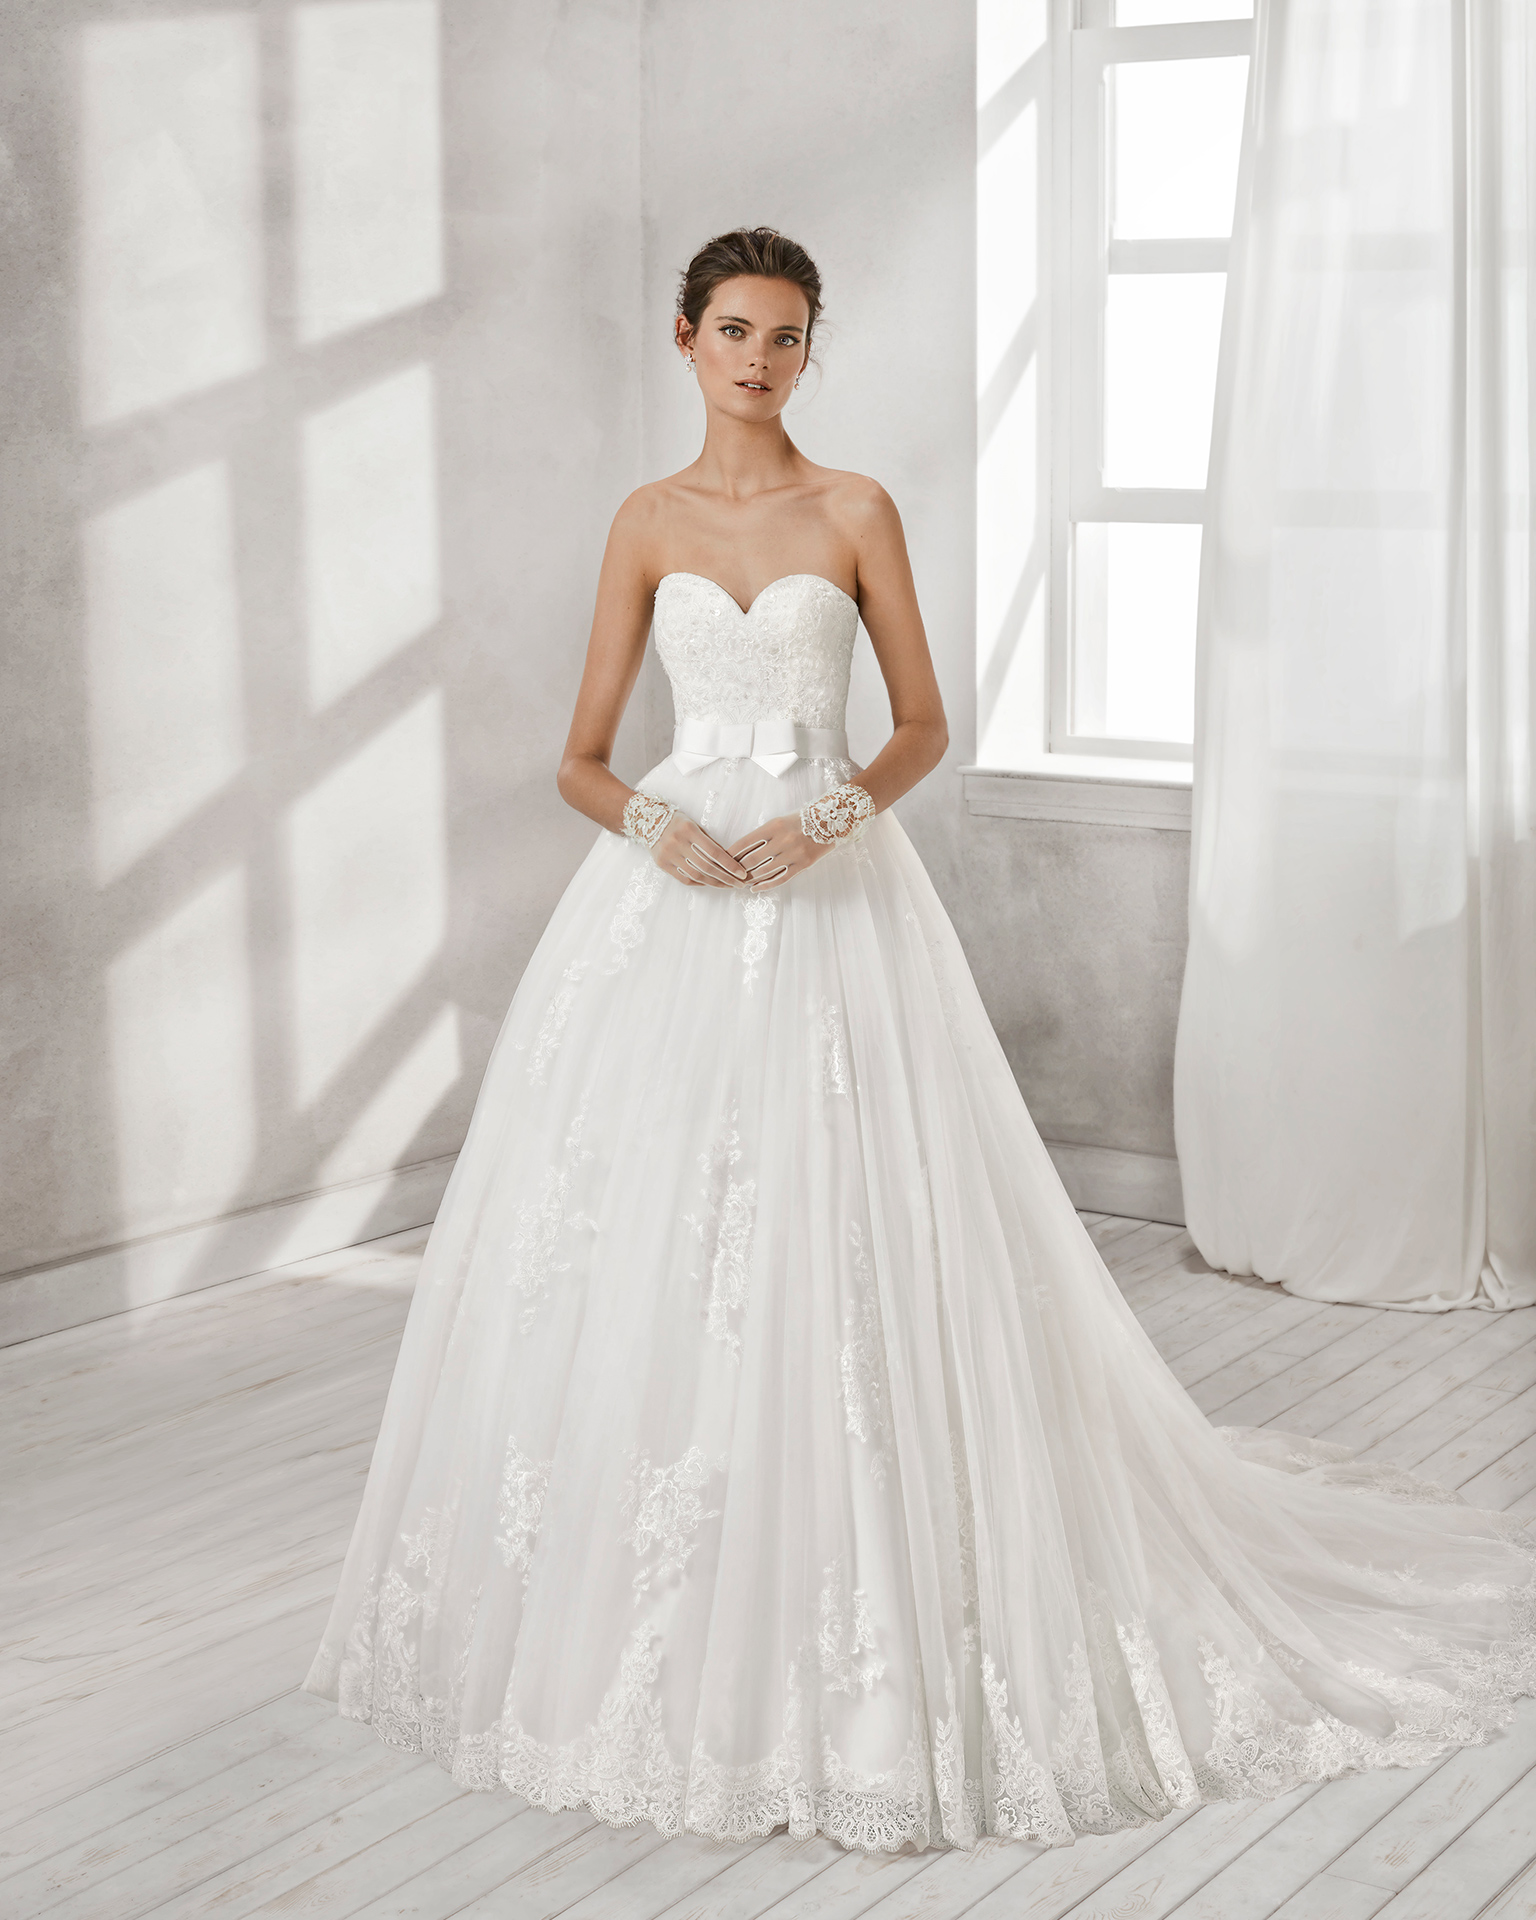 A-line beaded lace and tulle wedding dress with sweetheart neckline and bow at waist.